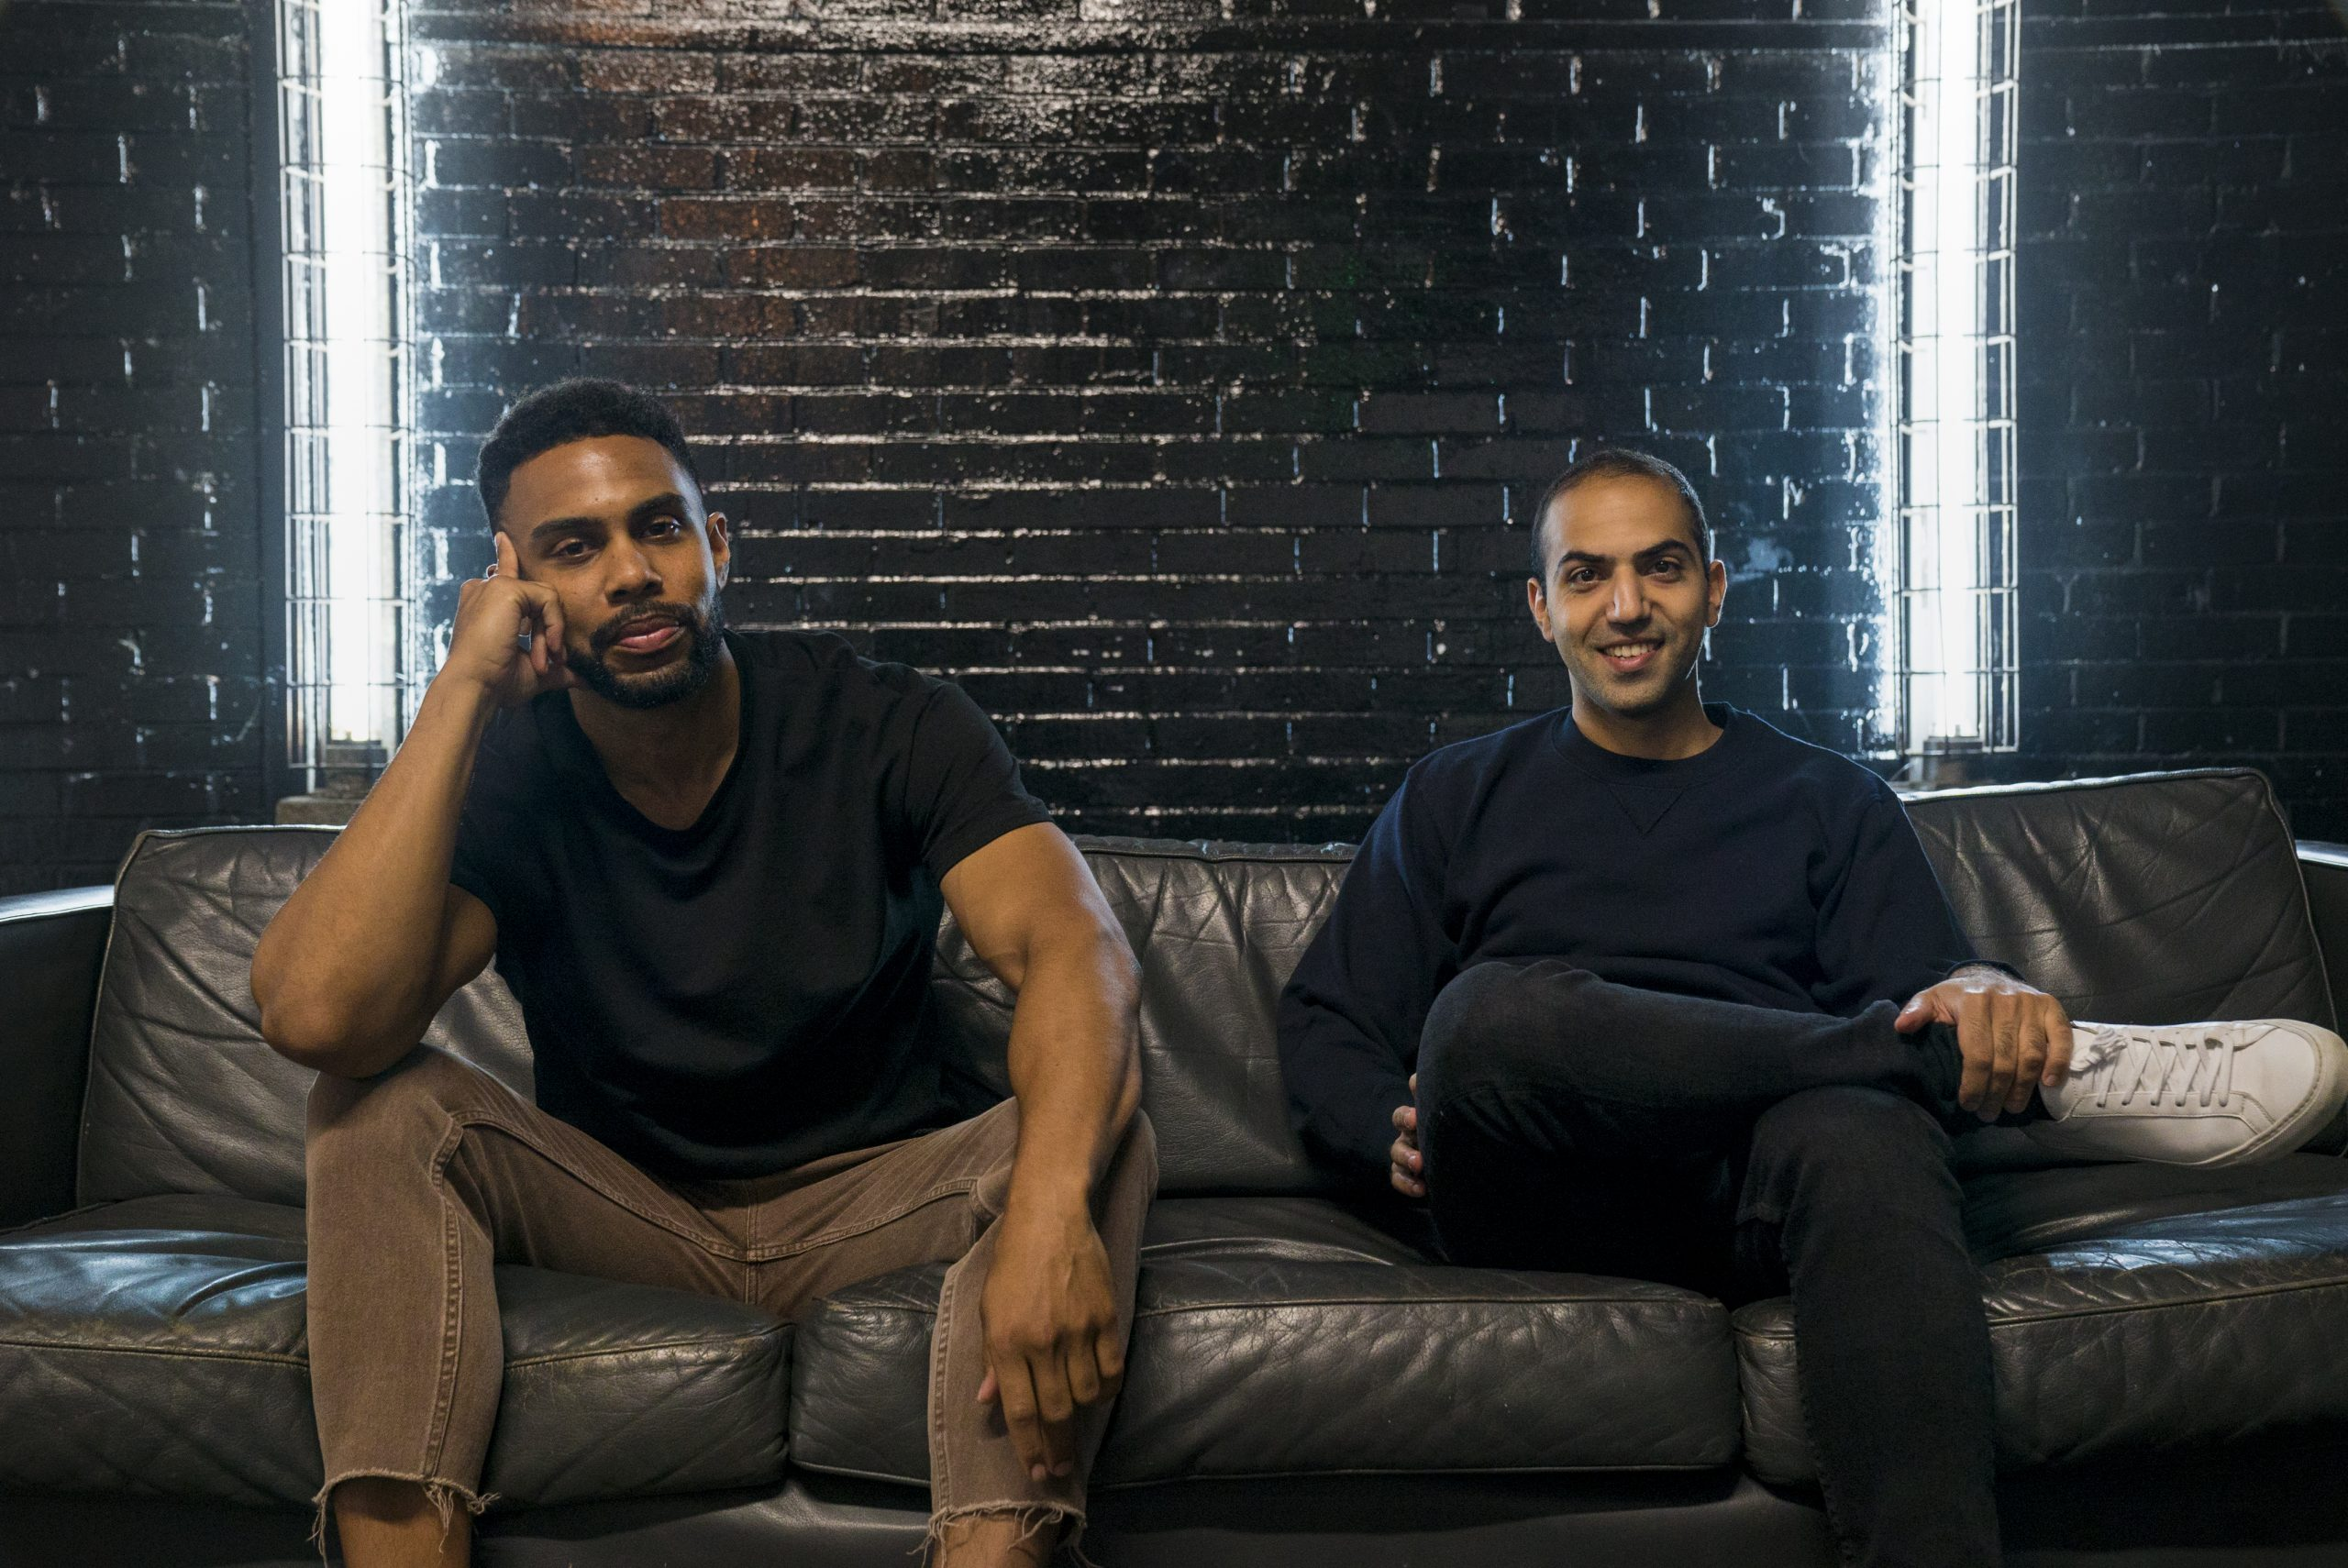 Qube coworking space for creatives raises £1.9m seed round